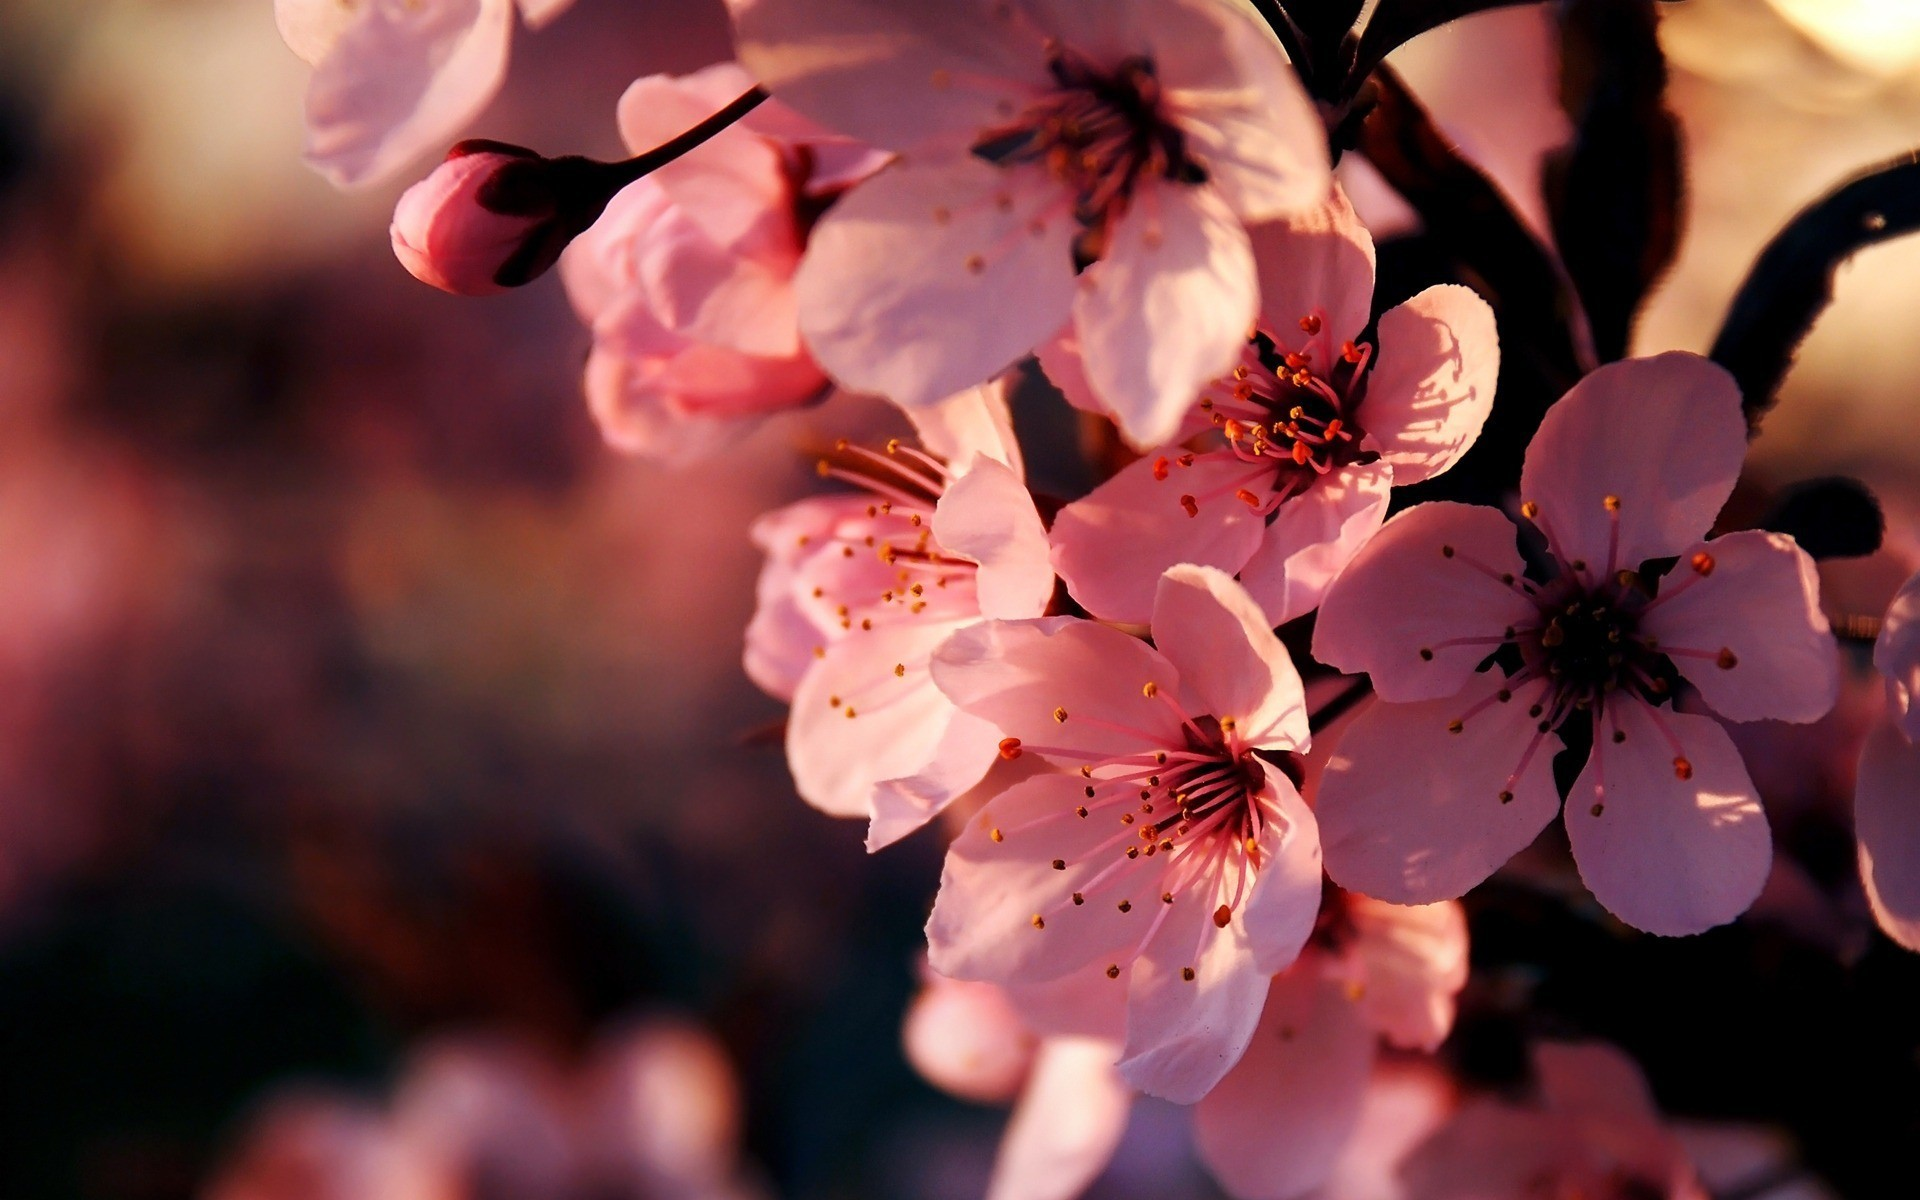 Hd wallpaper pink flowers 72 images 1920x1200 pink flowers wallpaper backgrounds 4728 wallpaper cool mightylinksfo